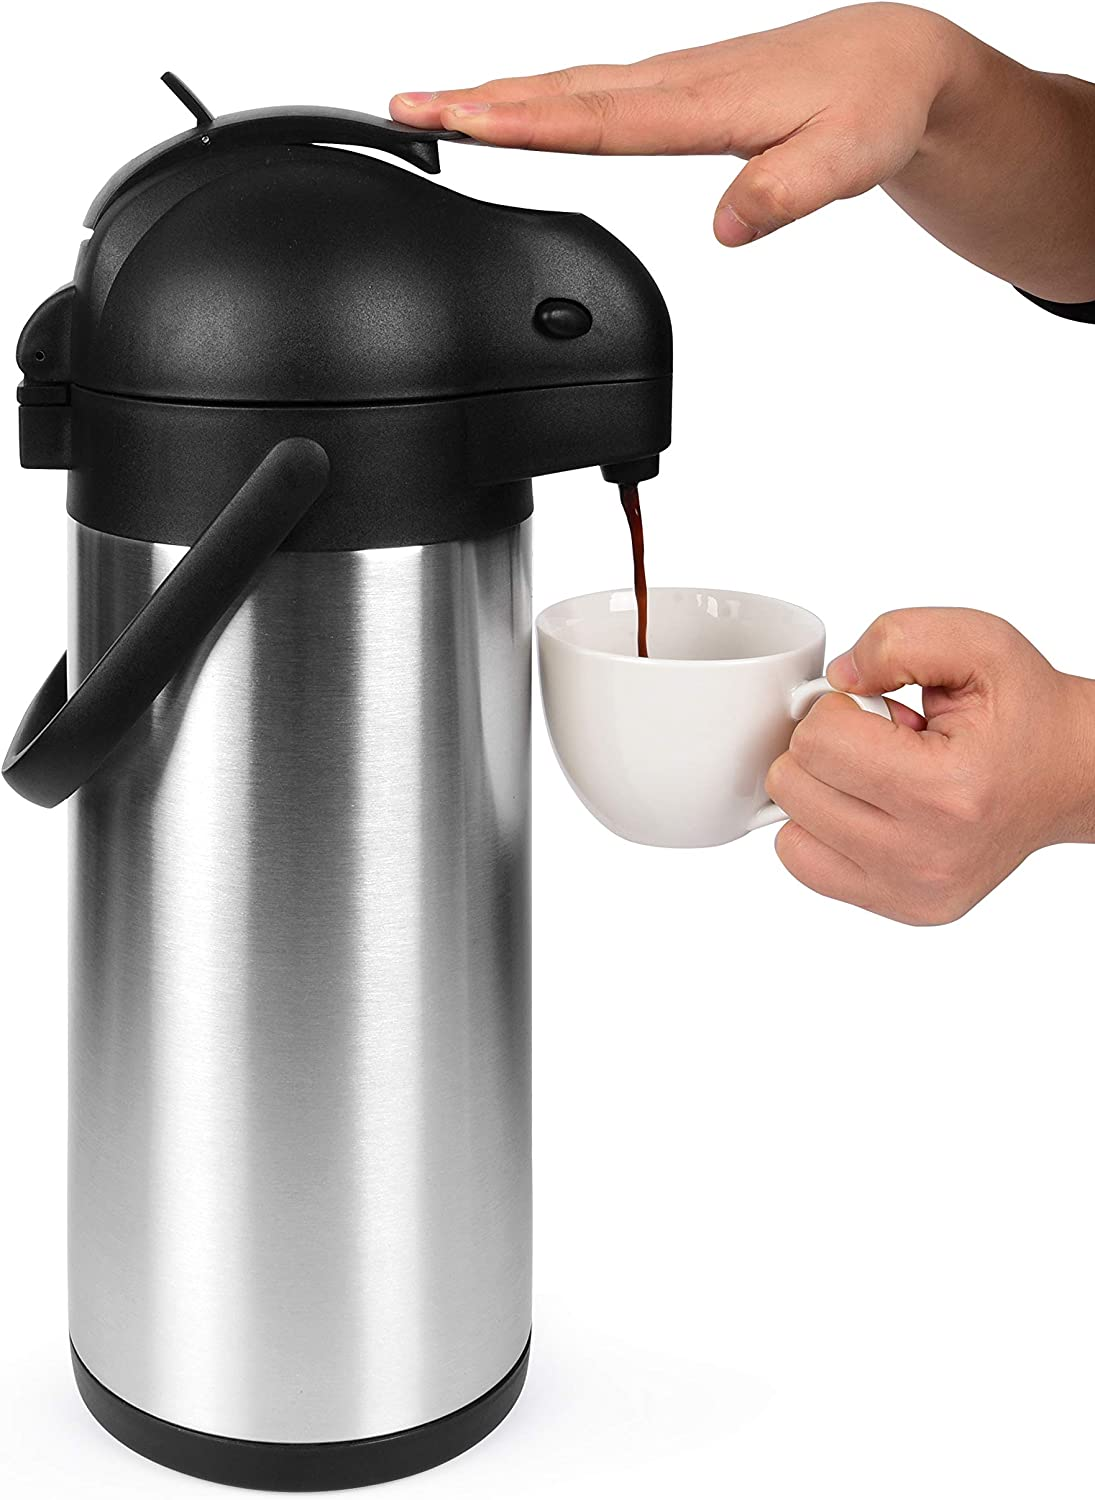 Cresimo 101 Oz (3L) Airpot Thermal Coffee Carafe and Coffee Server/Lever Action/Stainless Steel Insulated Flask / 12 Hour Heat Retention / 24 Hour Cold Retention (Airpot)